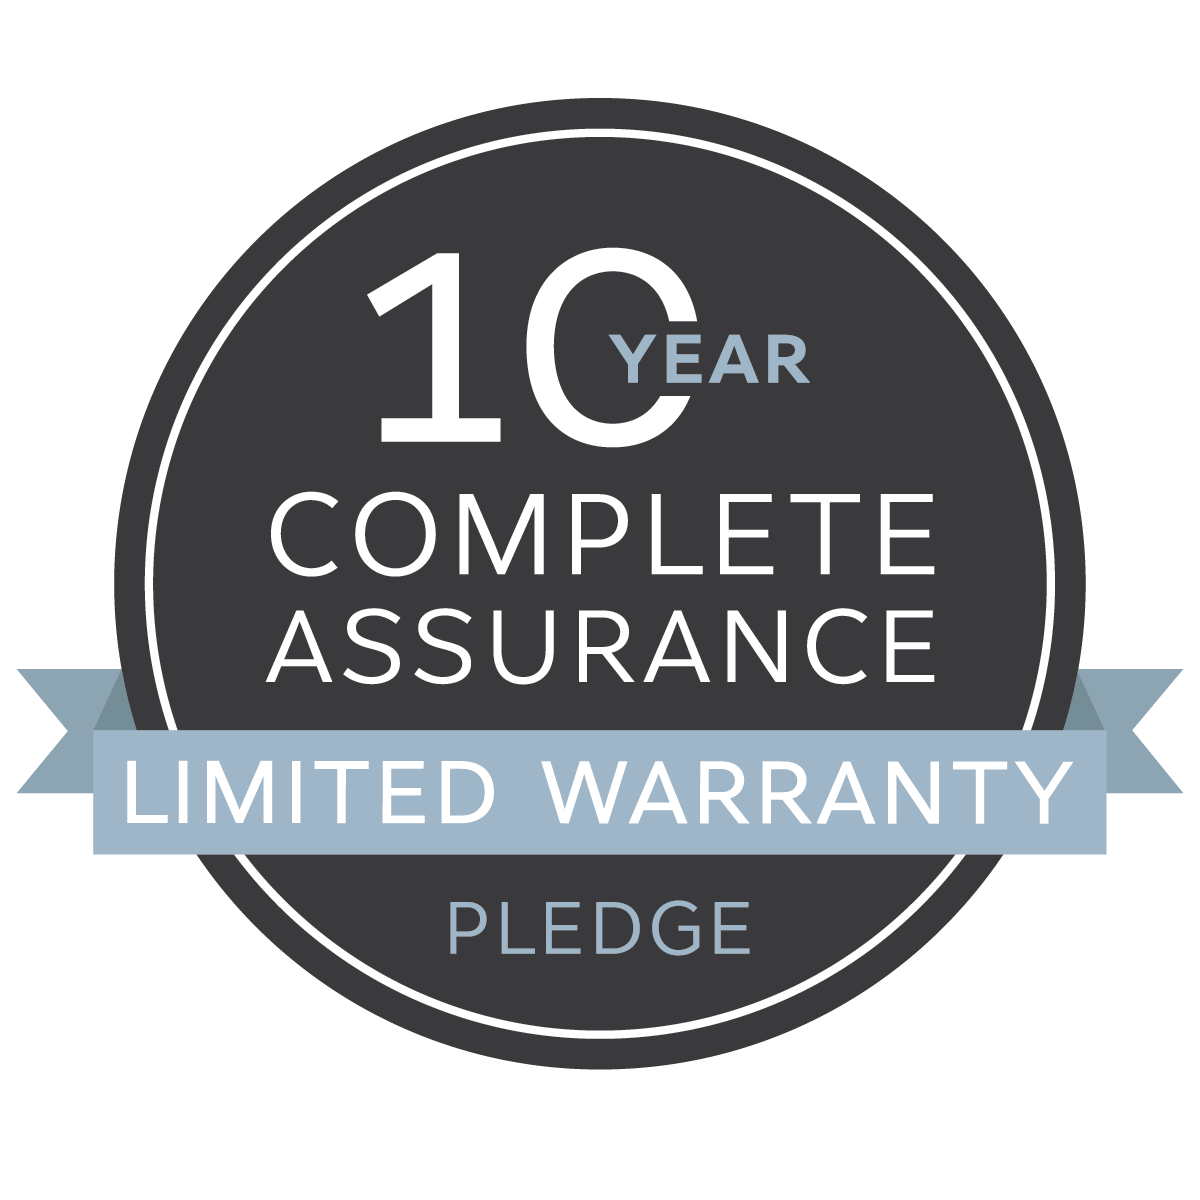 Homeowners in Bedford, IN can trust York because of their warranties.